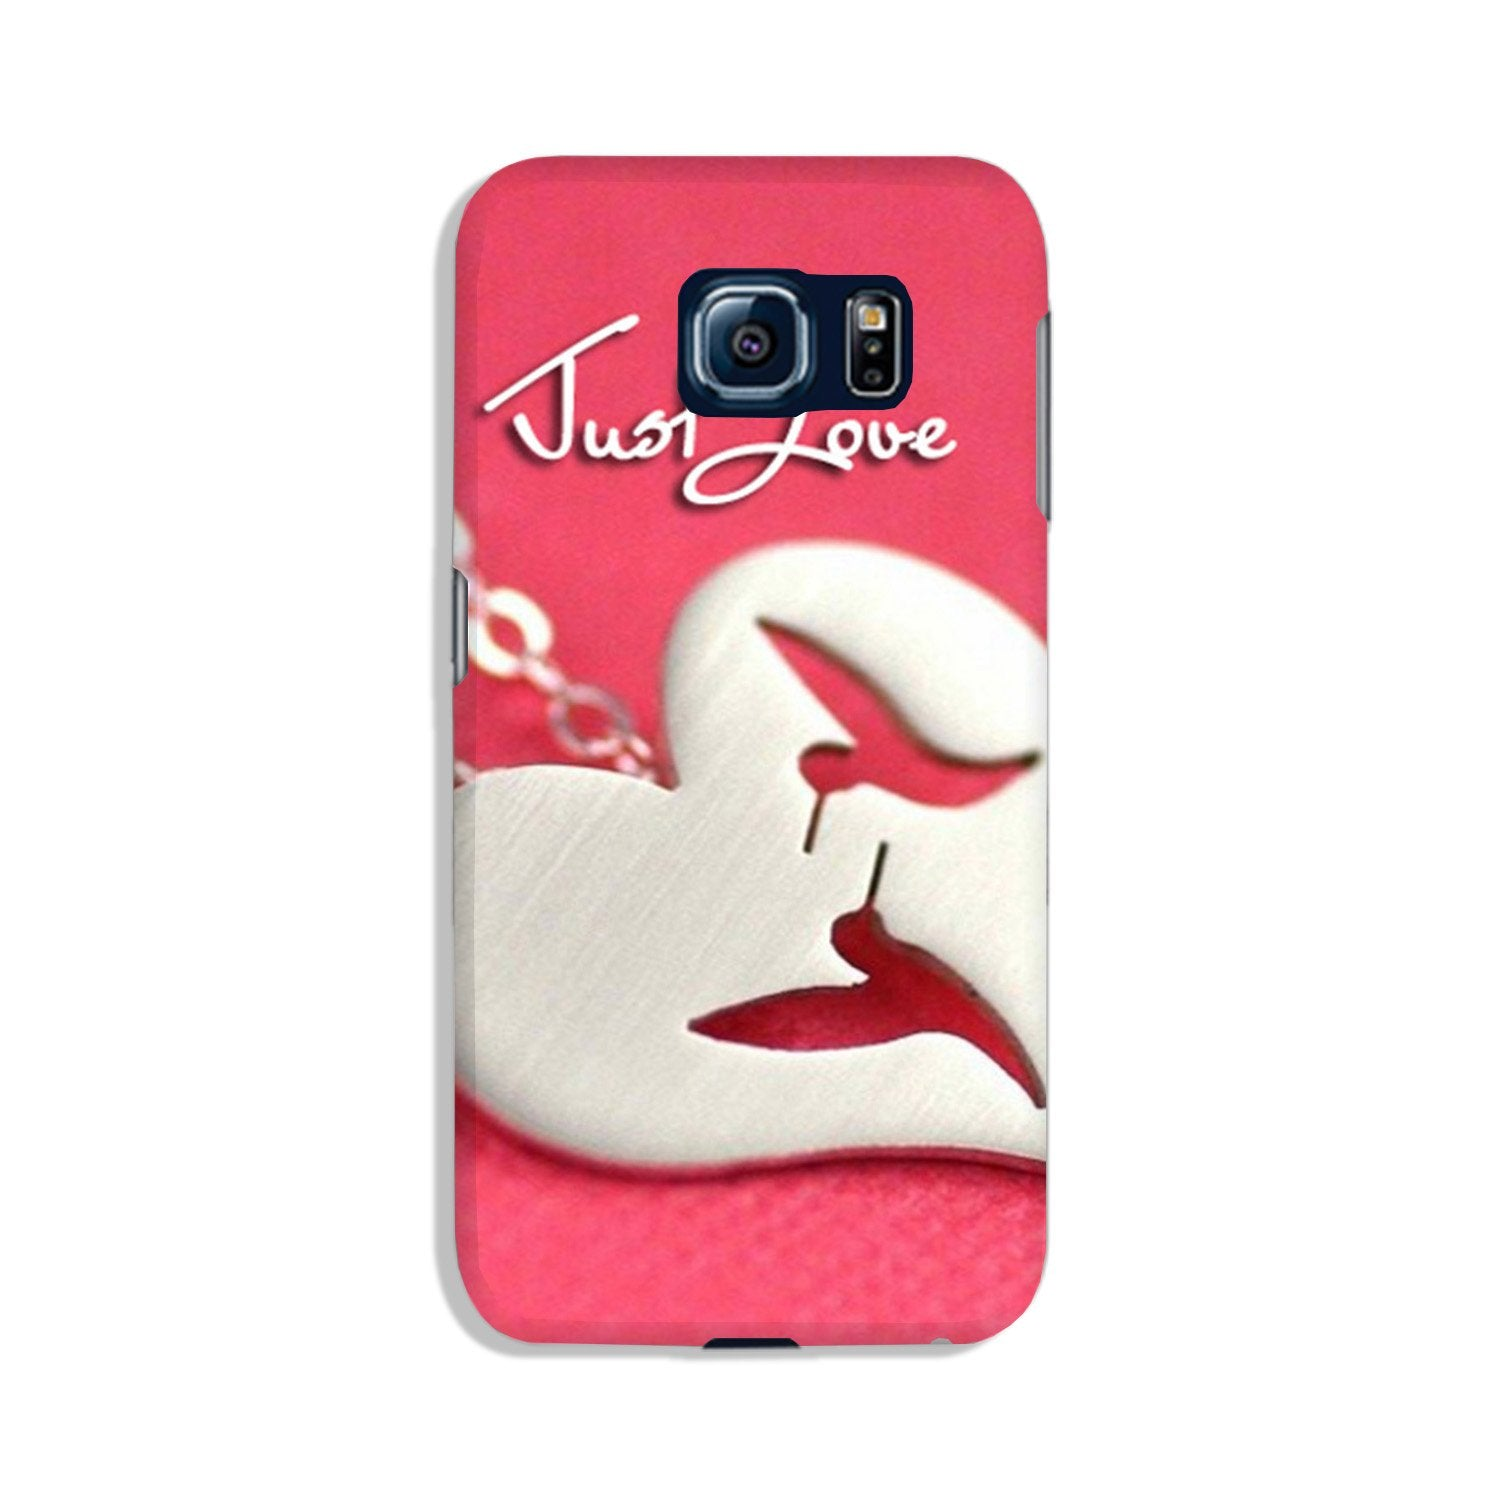 Just love Case for Galaxy S6